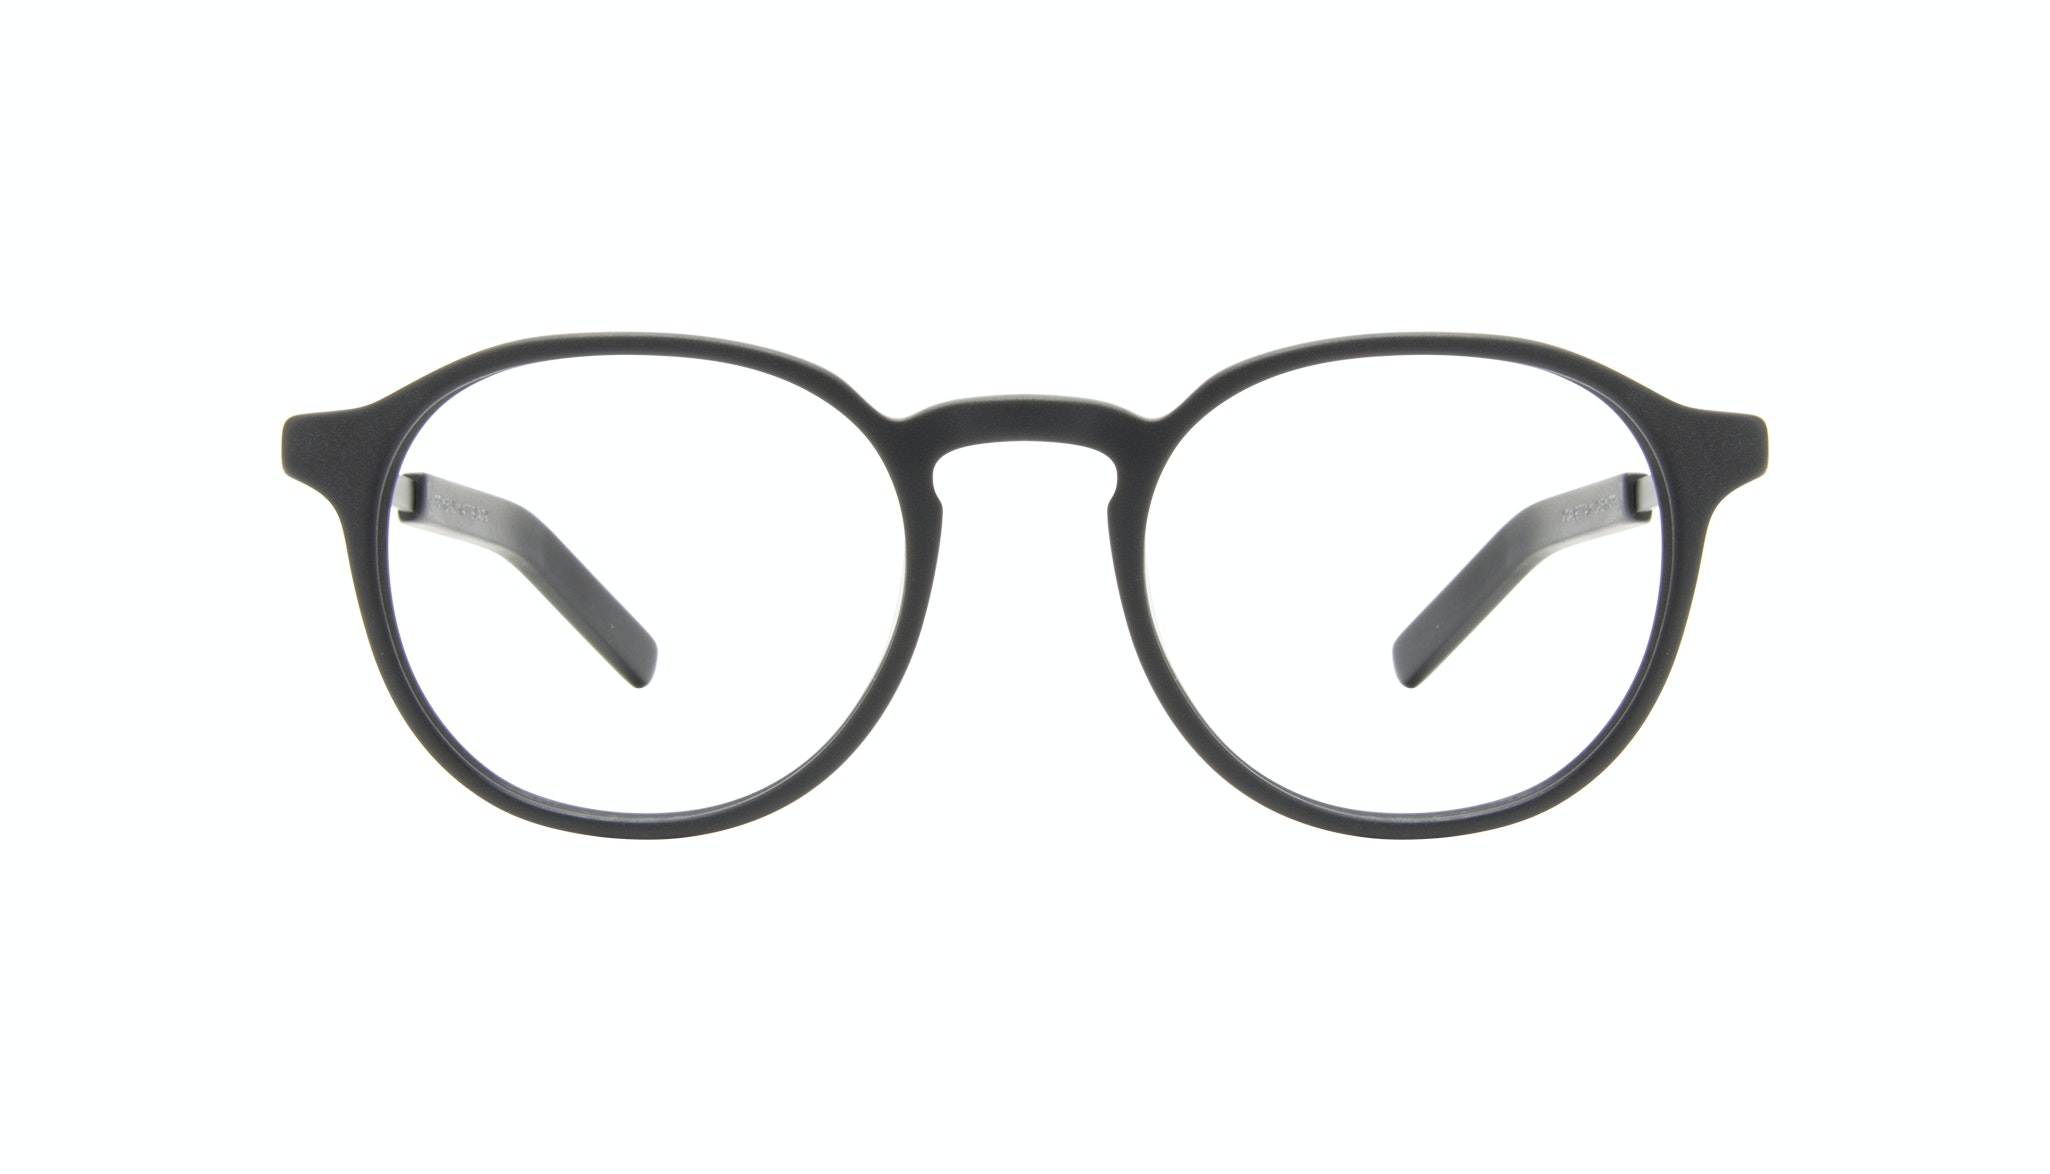 Affordable Fashion Glasses Round Eyeglasses Men Prime XL Matte Black